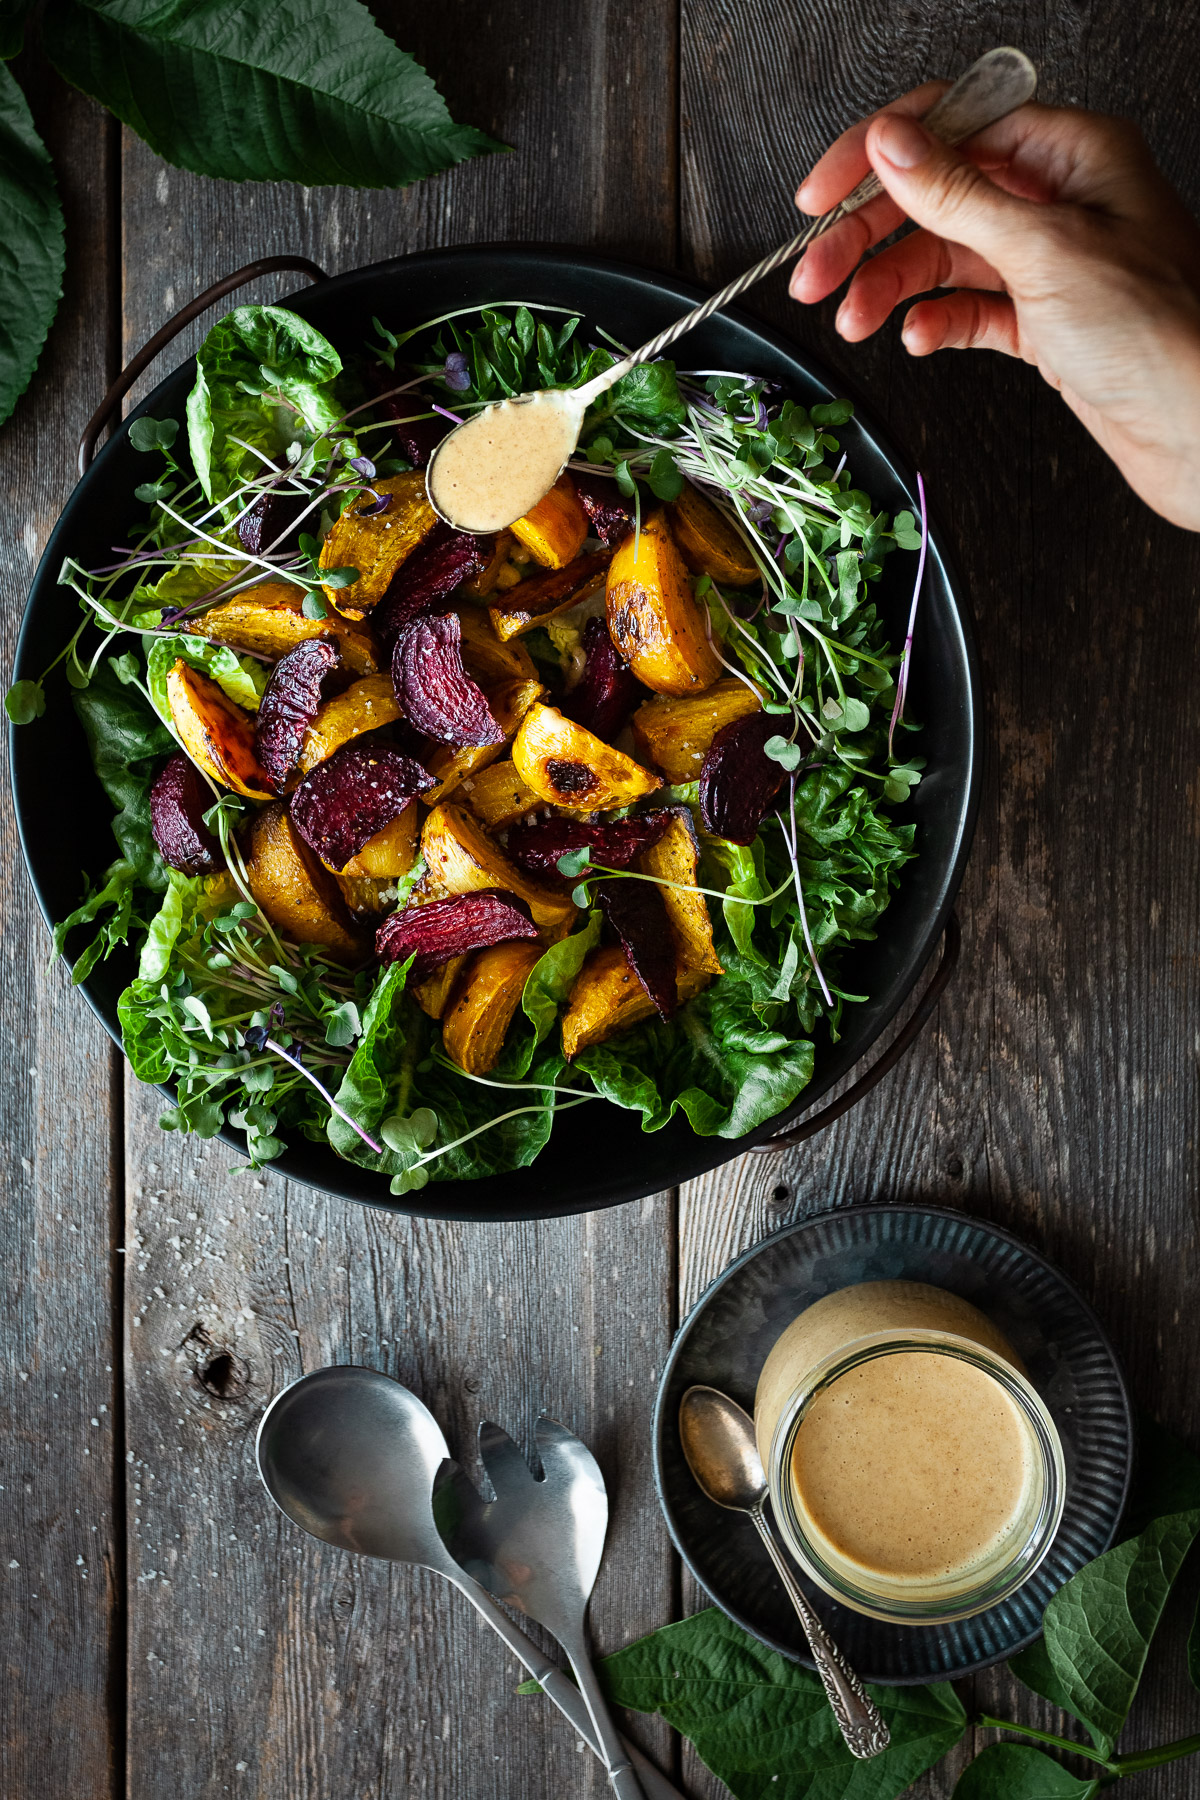 overhead view of a person drizzling dressing on a roasted beet salad on a wood surface.